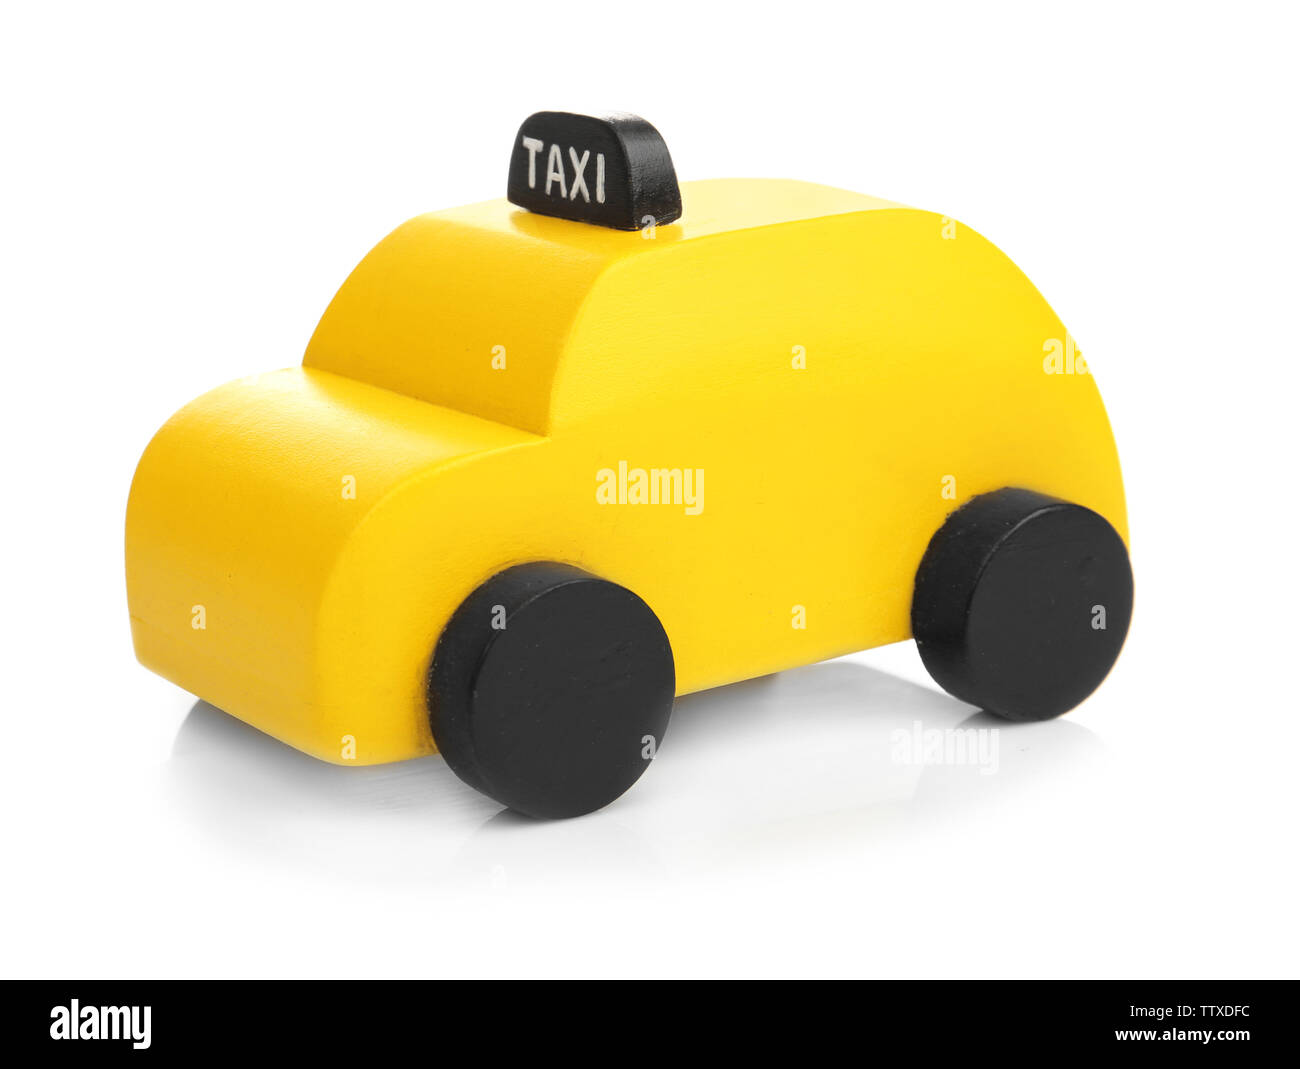 Yellow toy taxi cab isolated on white - Stock Image